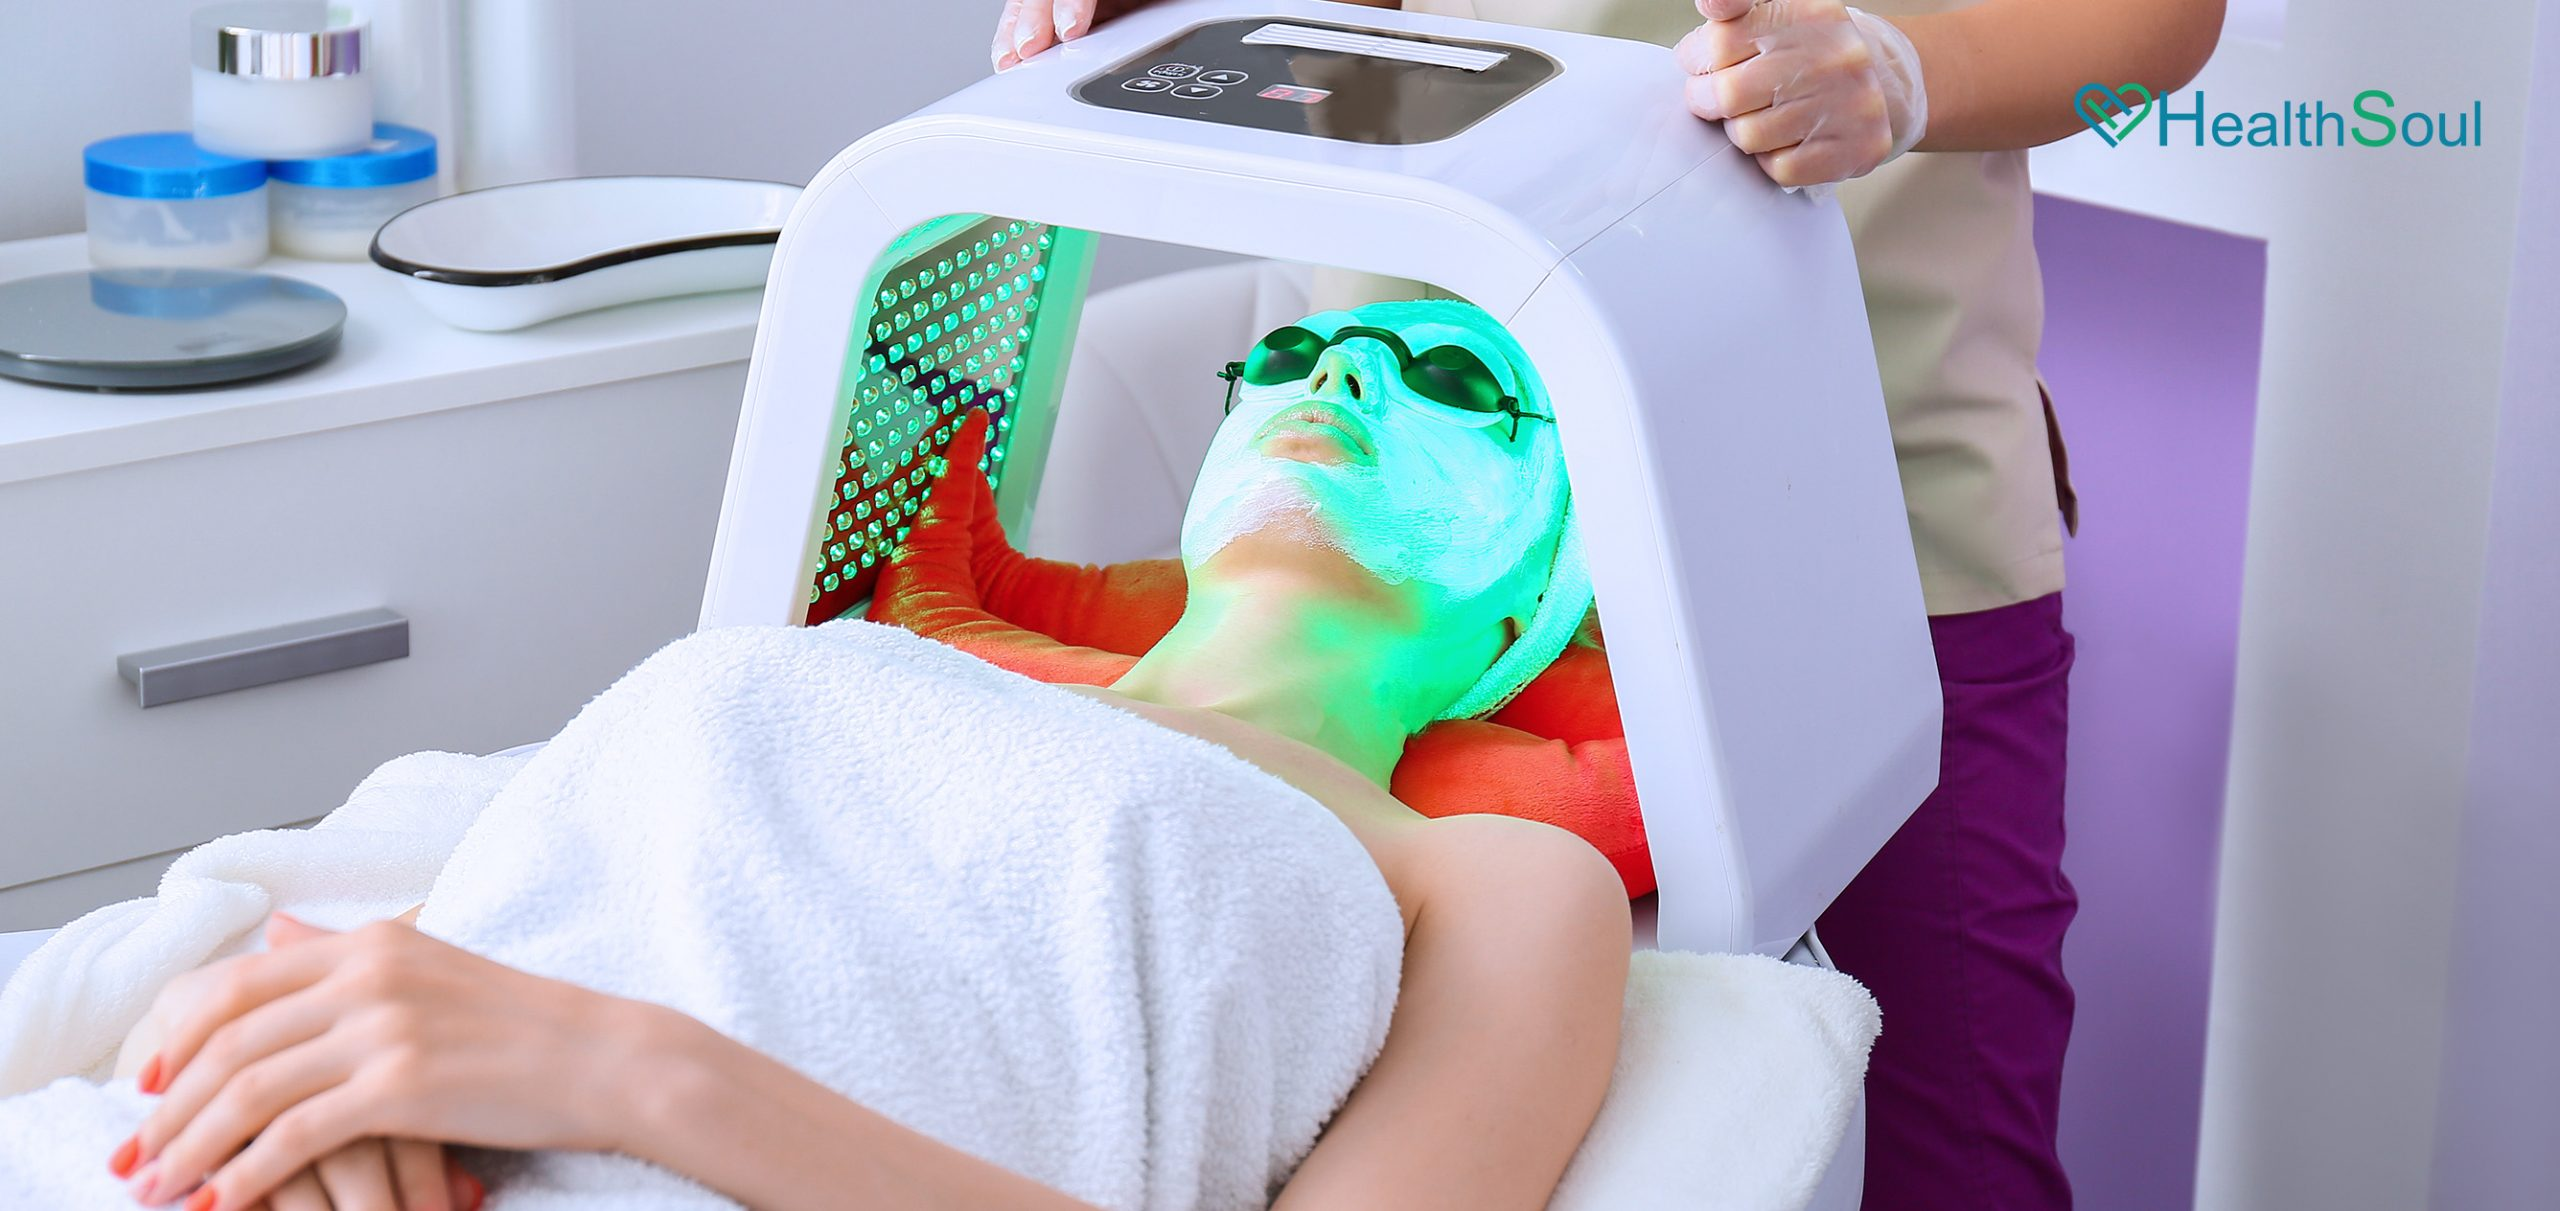 7 Important Things You Need To Know About The Chromotherapy   HealthSoul